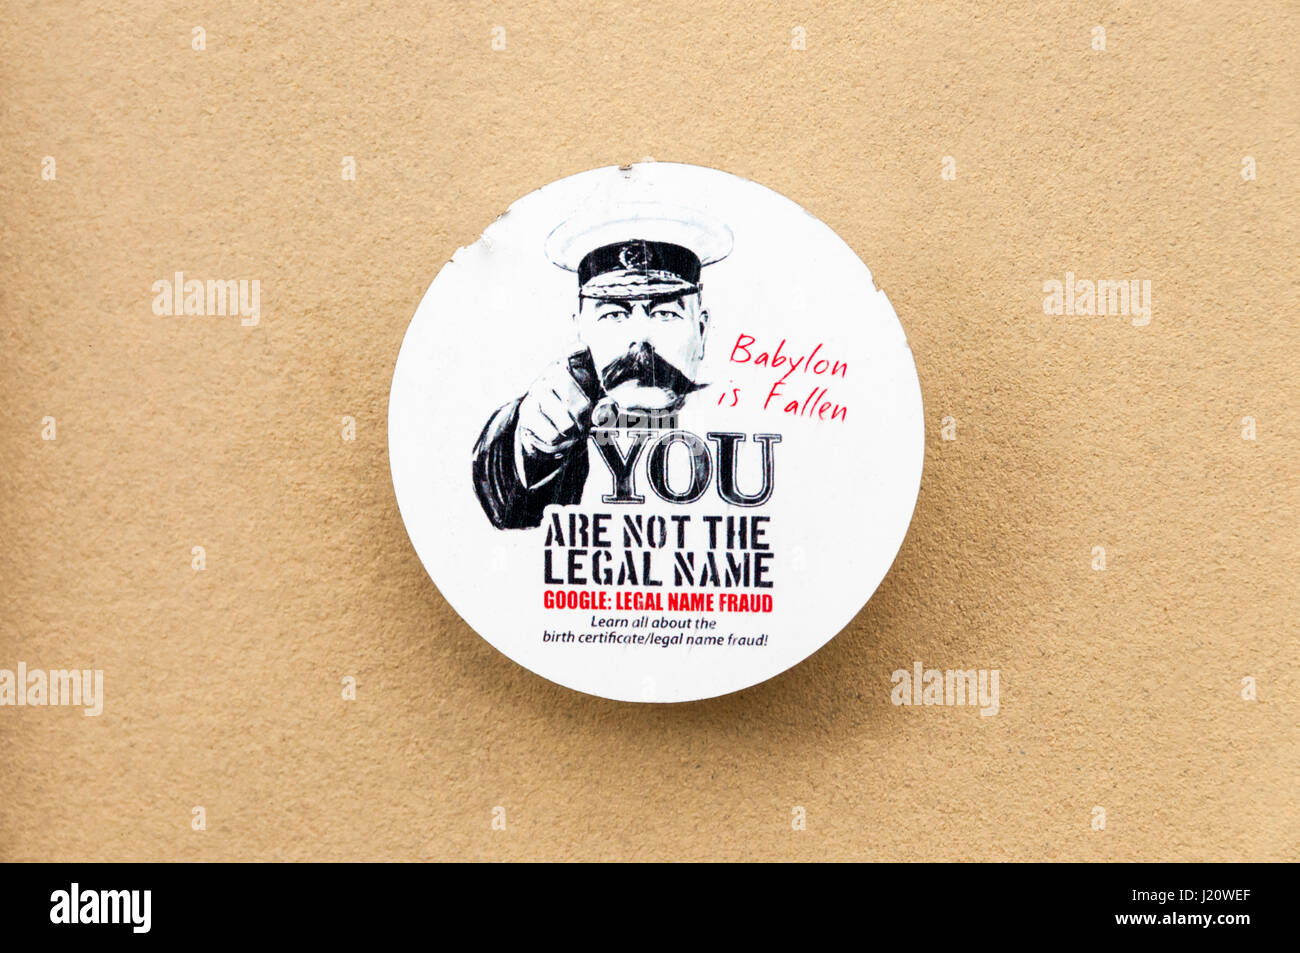 Legal Name Fraud sticker. SEE DETAILS IN DESCRIPTION. - Stock Image